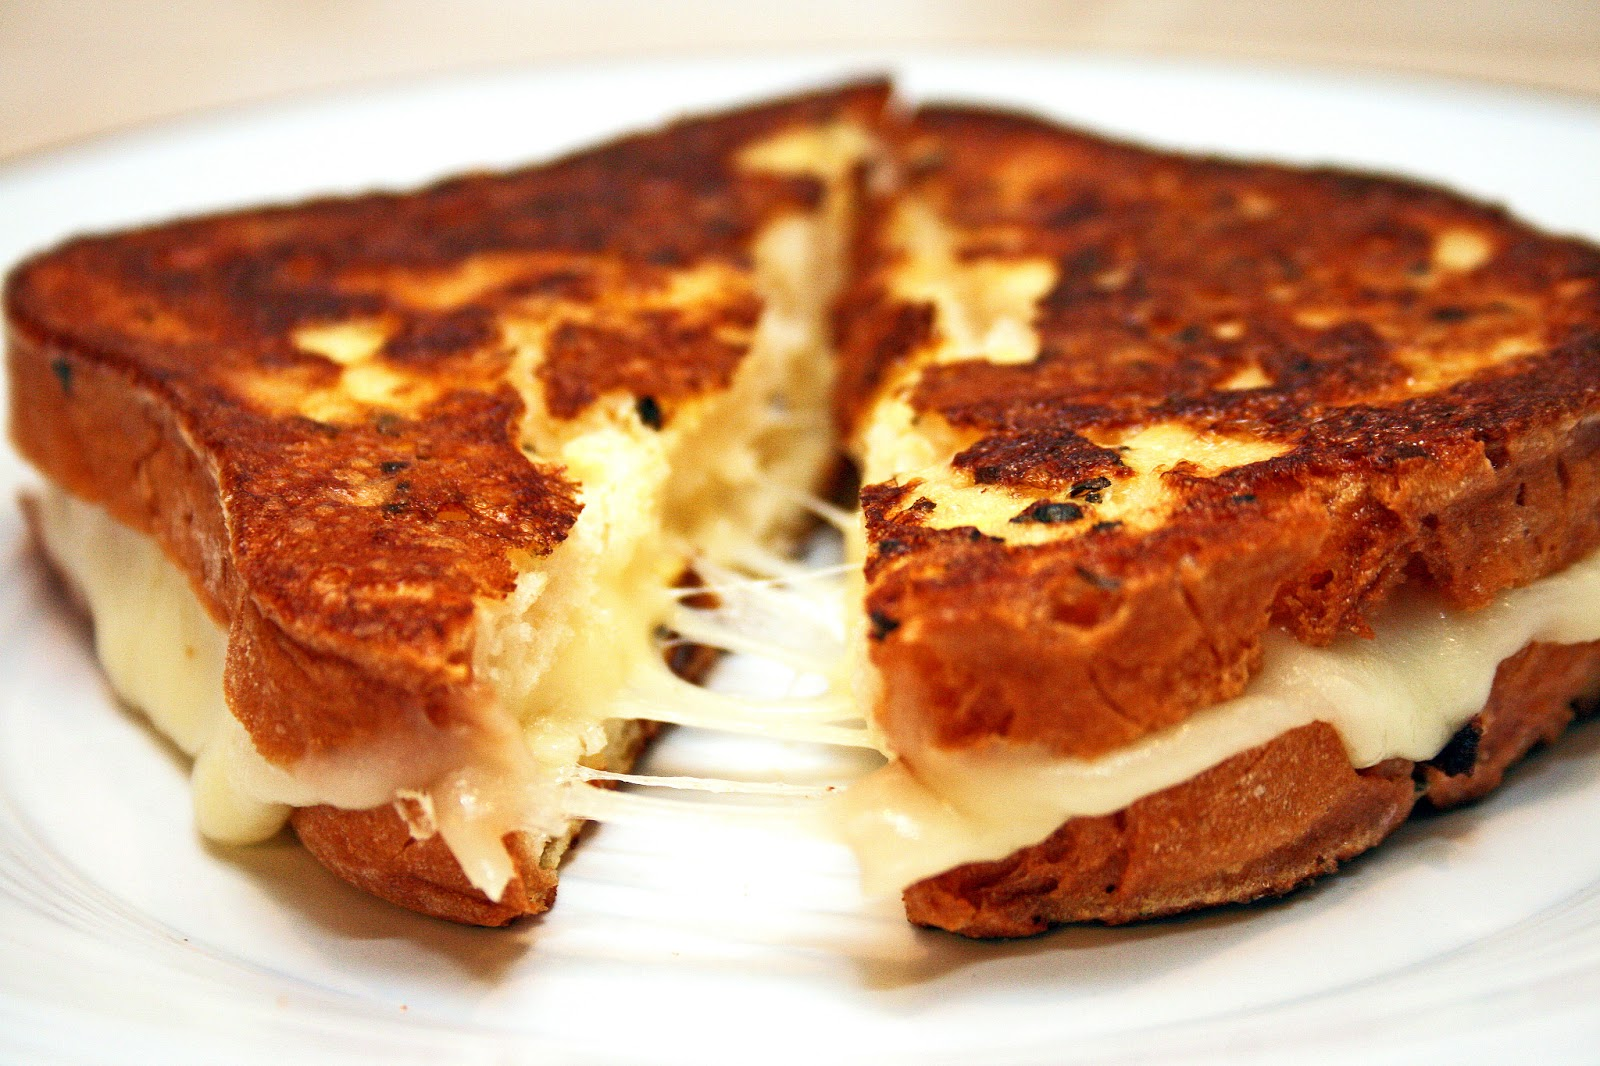 Mozzarella Sticks Grilled Cheese Sandwich |Grilled Cheese With Mozzarella Sticks